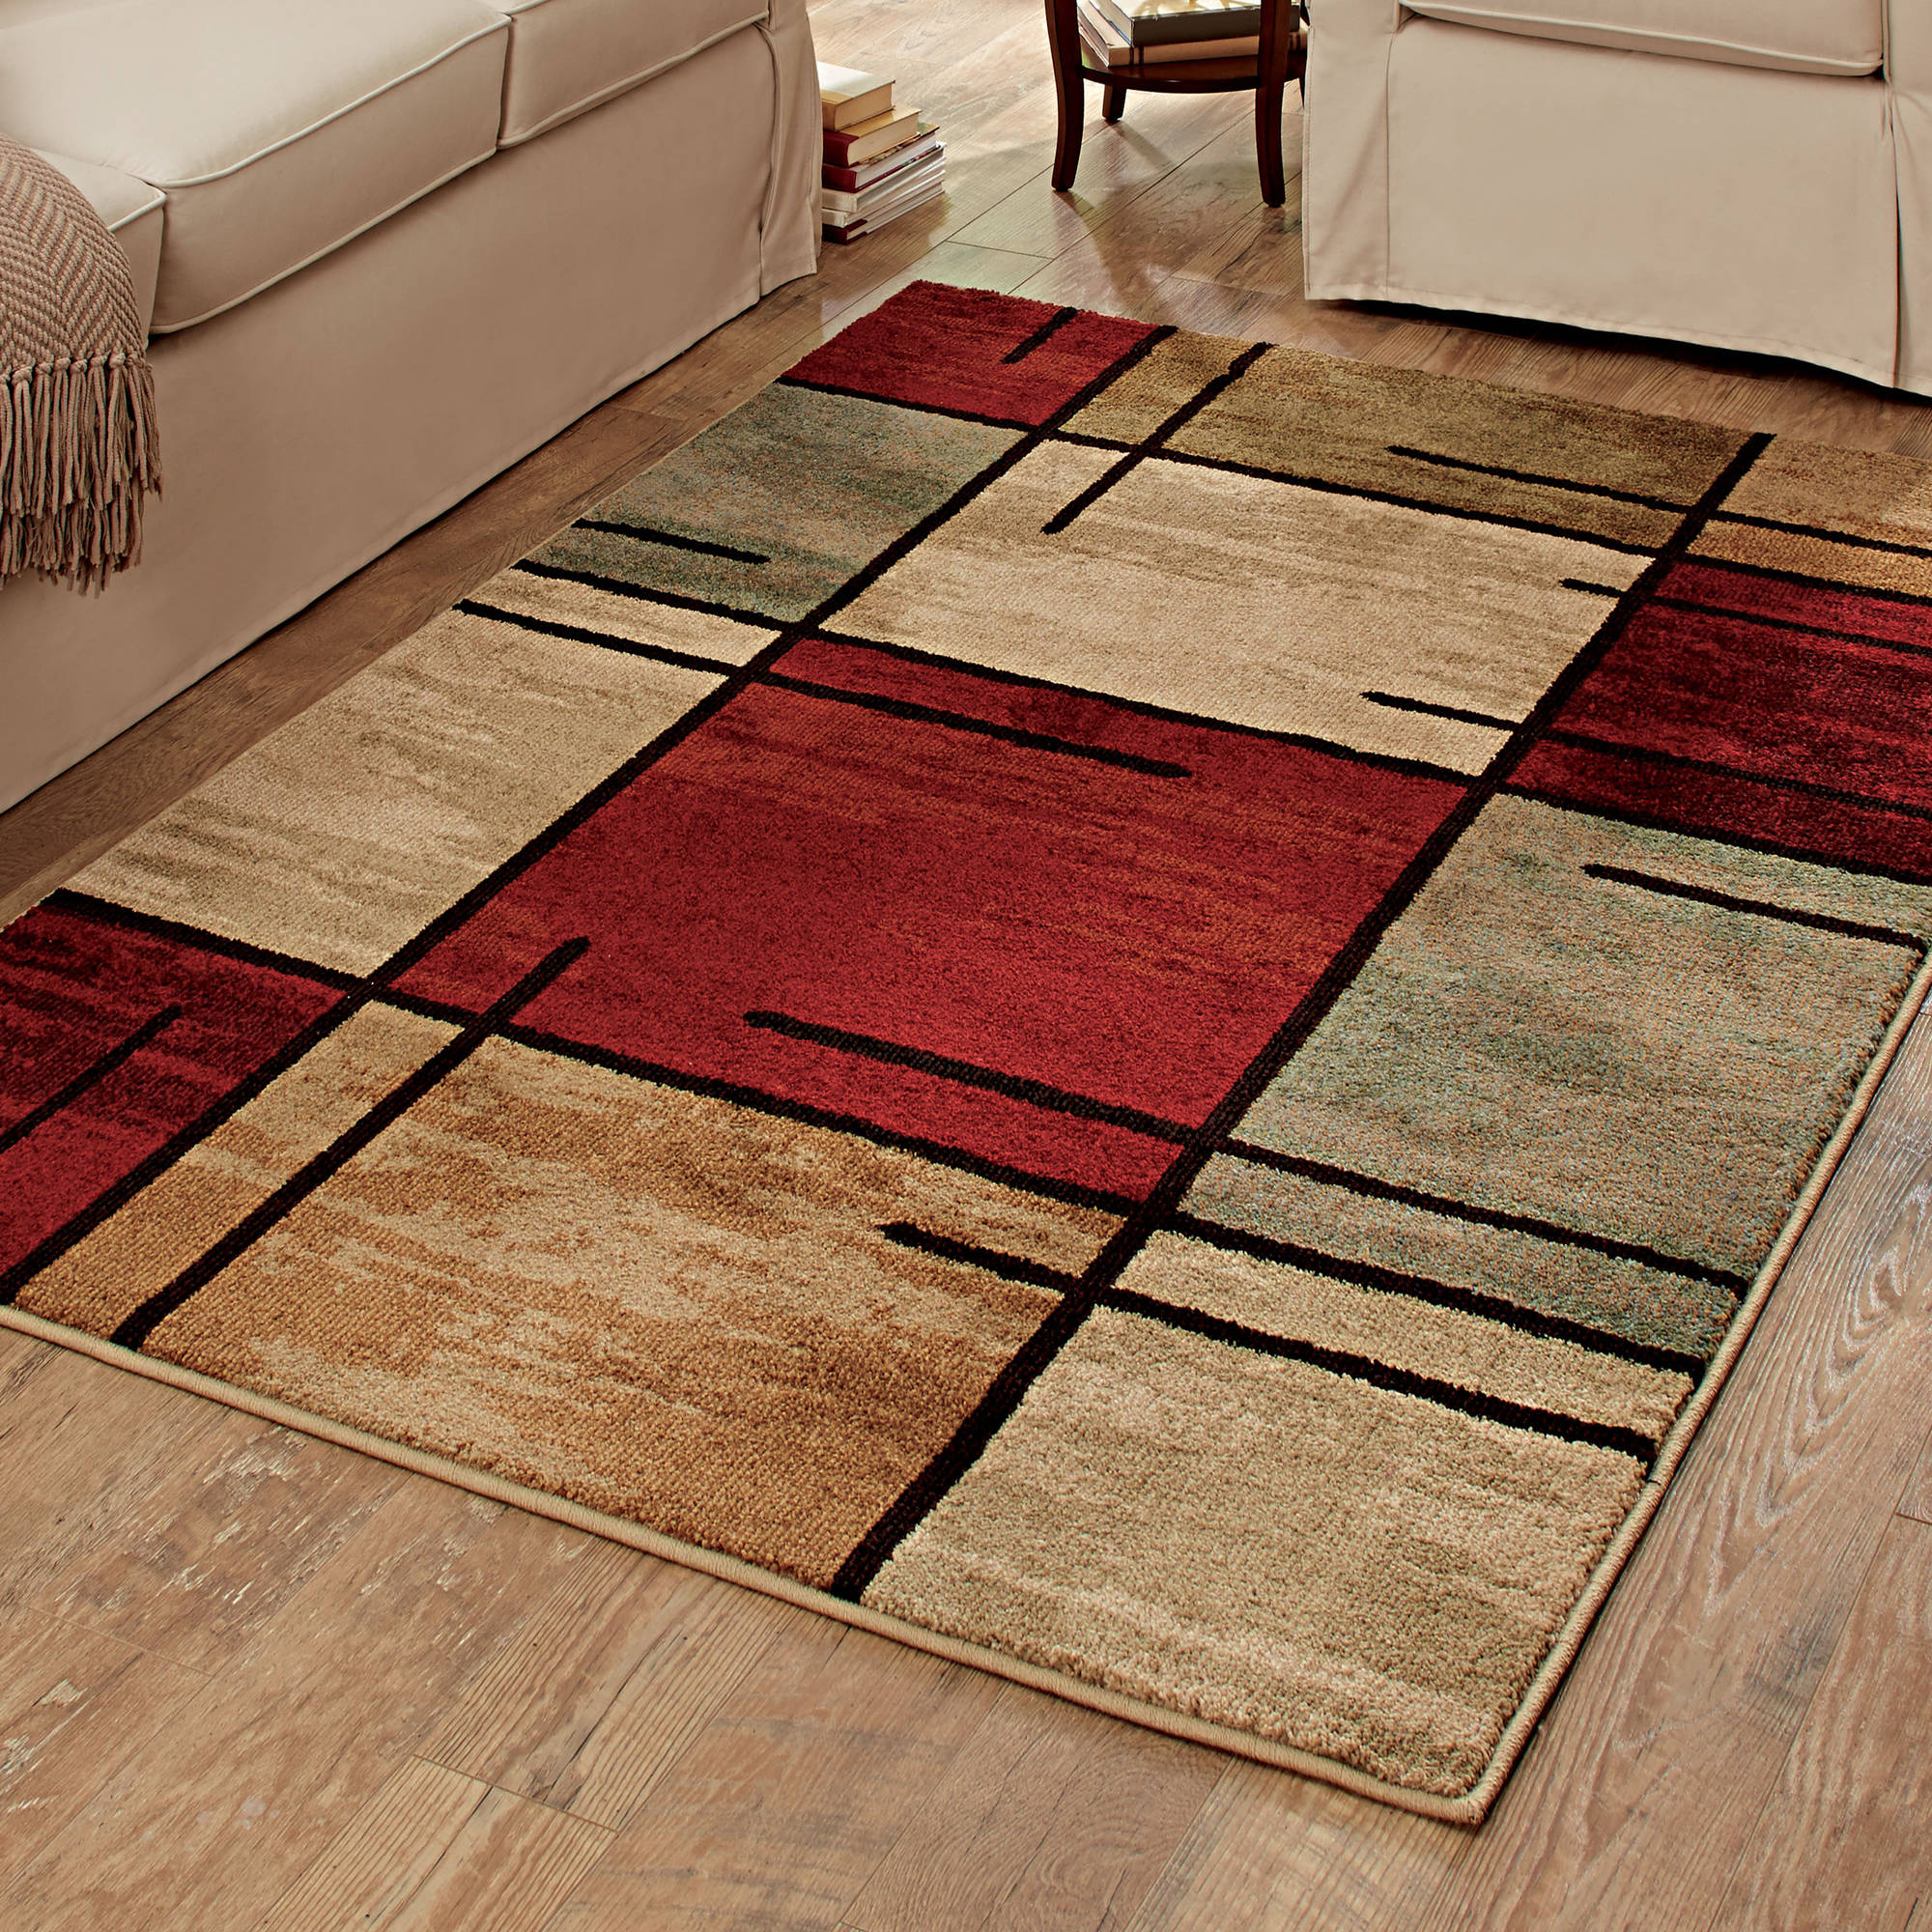 Rug carpet area rugs CPSQBGN